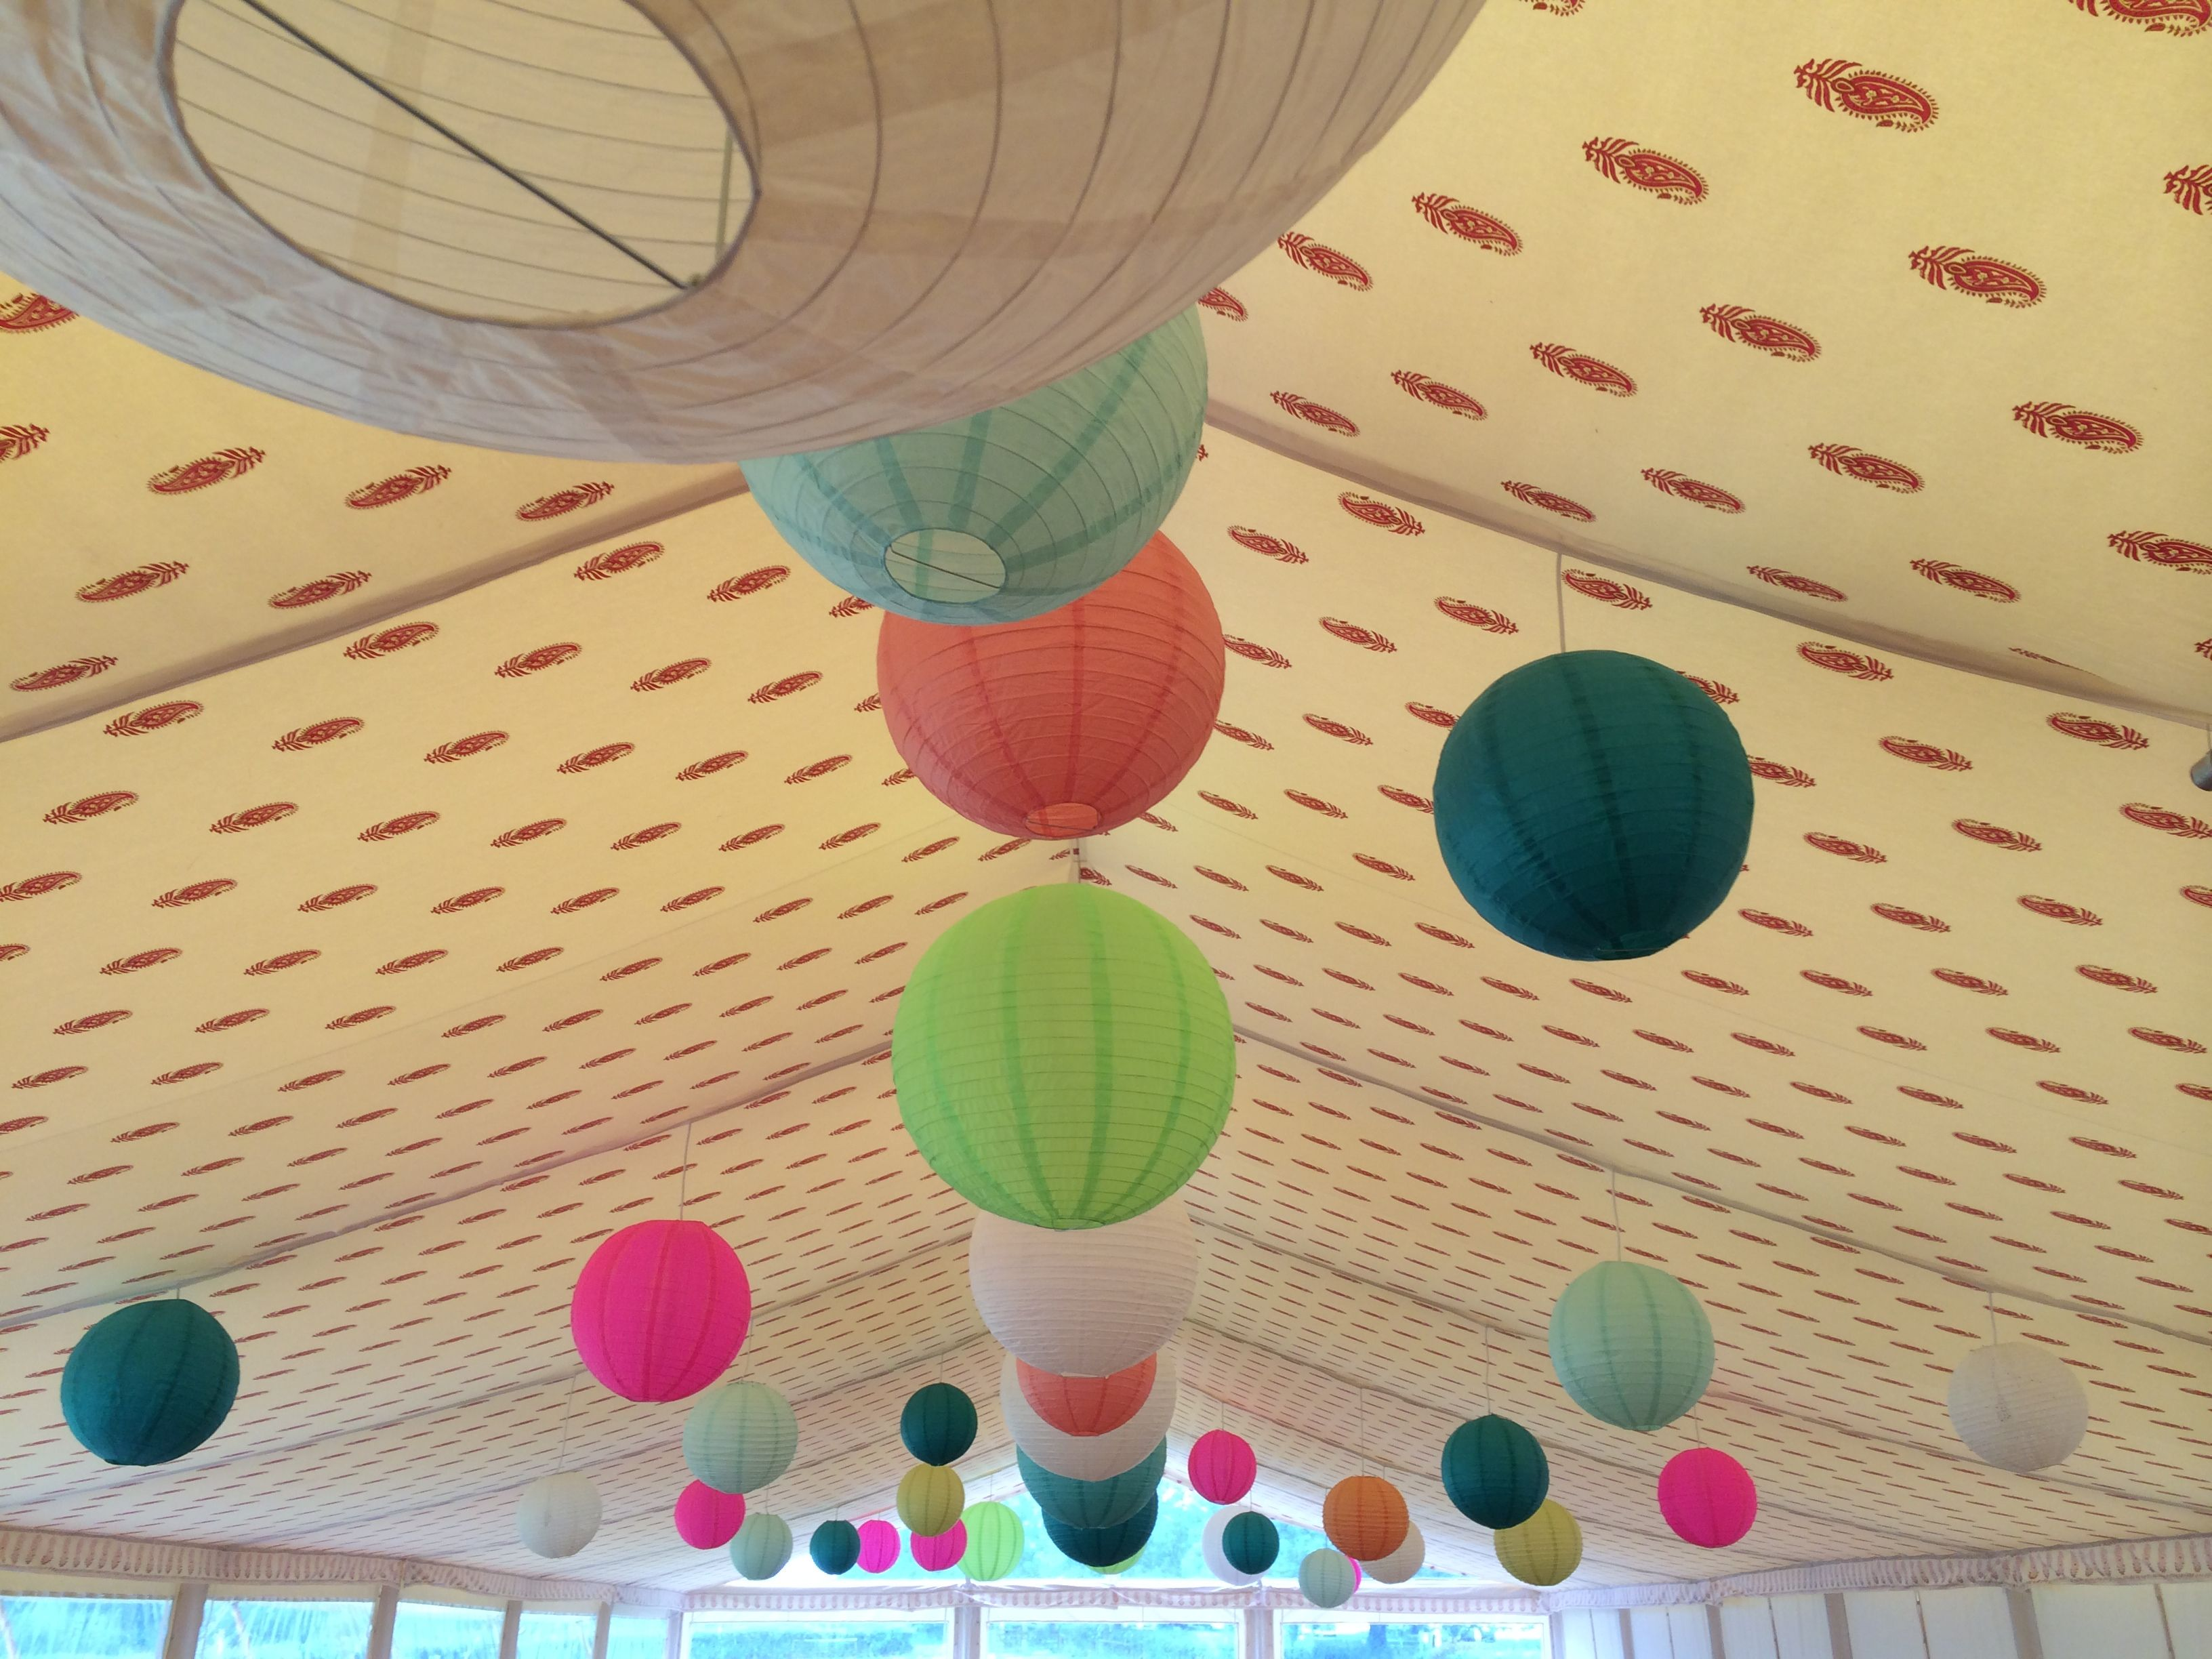 Printed linings and multi coloured lanterns!